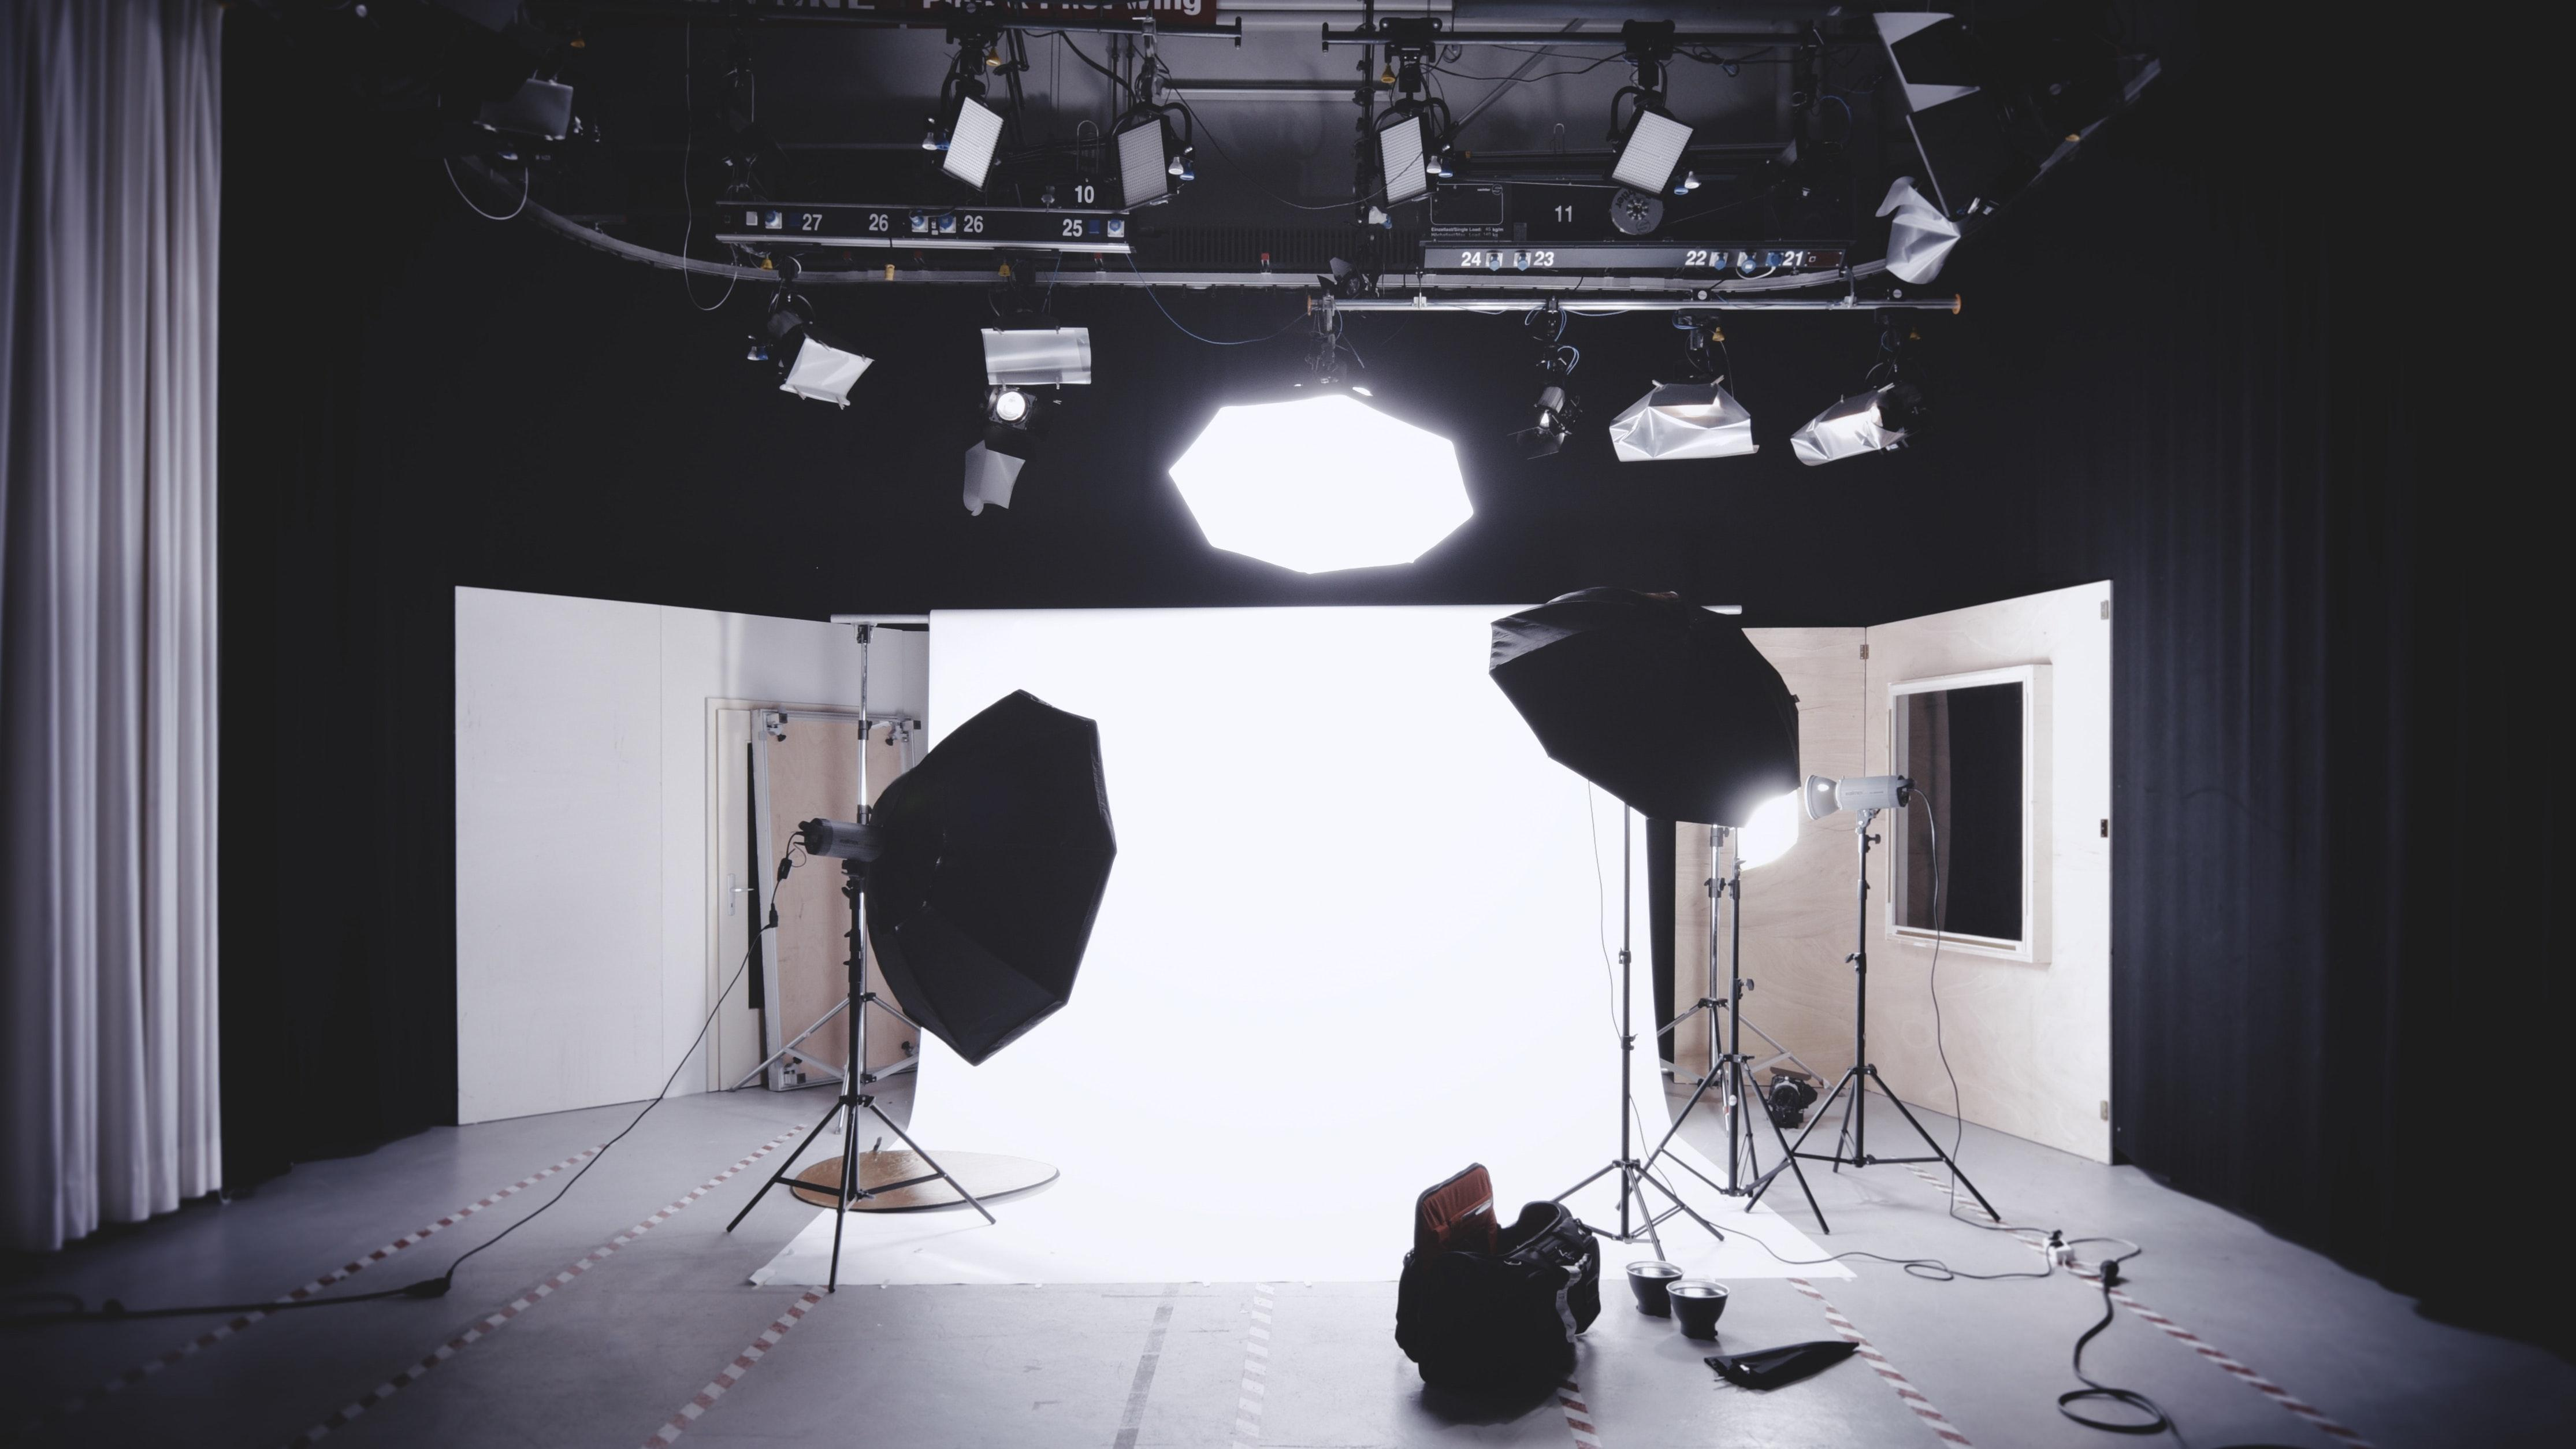 Top tips for ensuring a successful, creative and smooth photoshoot.